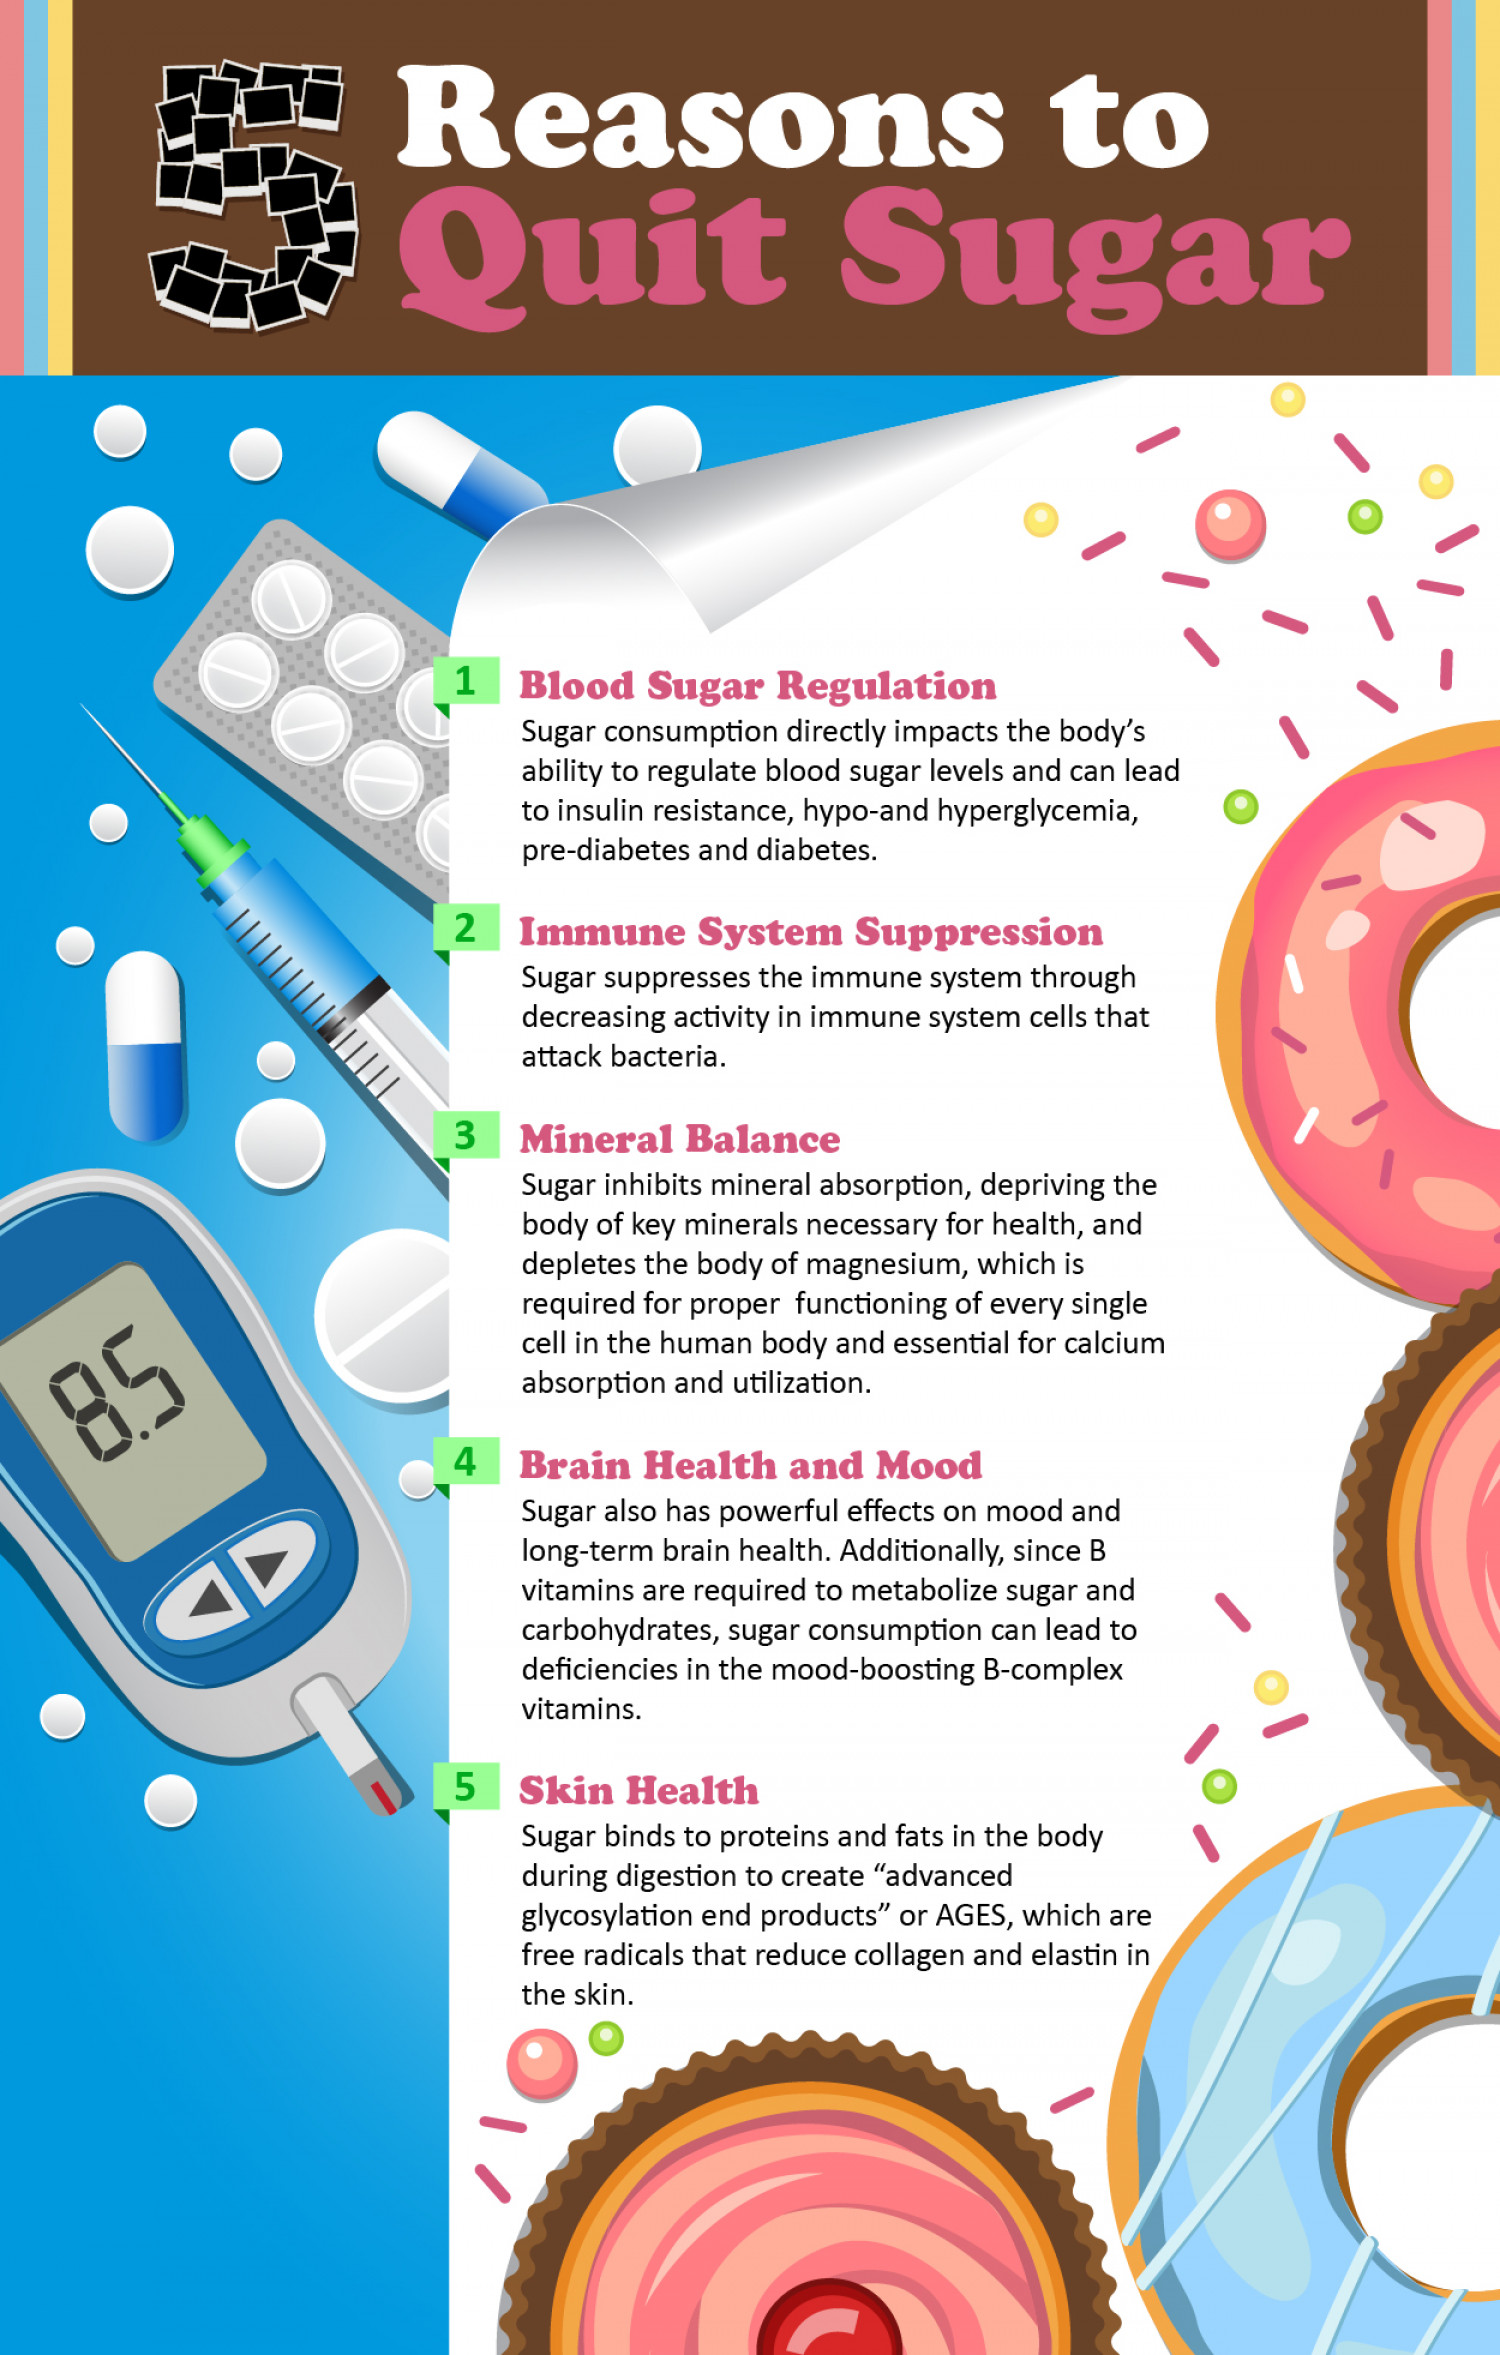 Reasons to quit sugar infographic